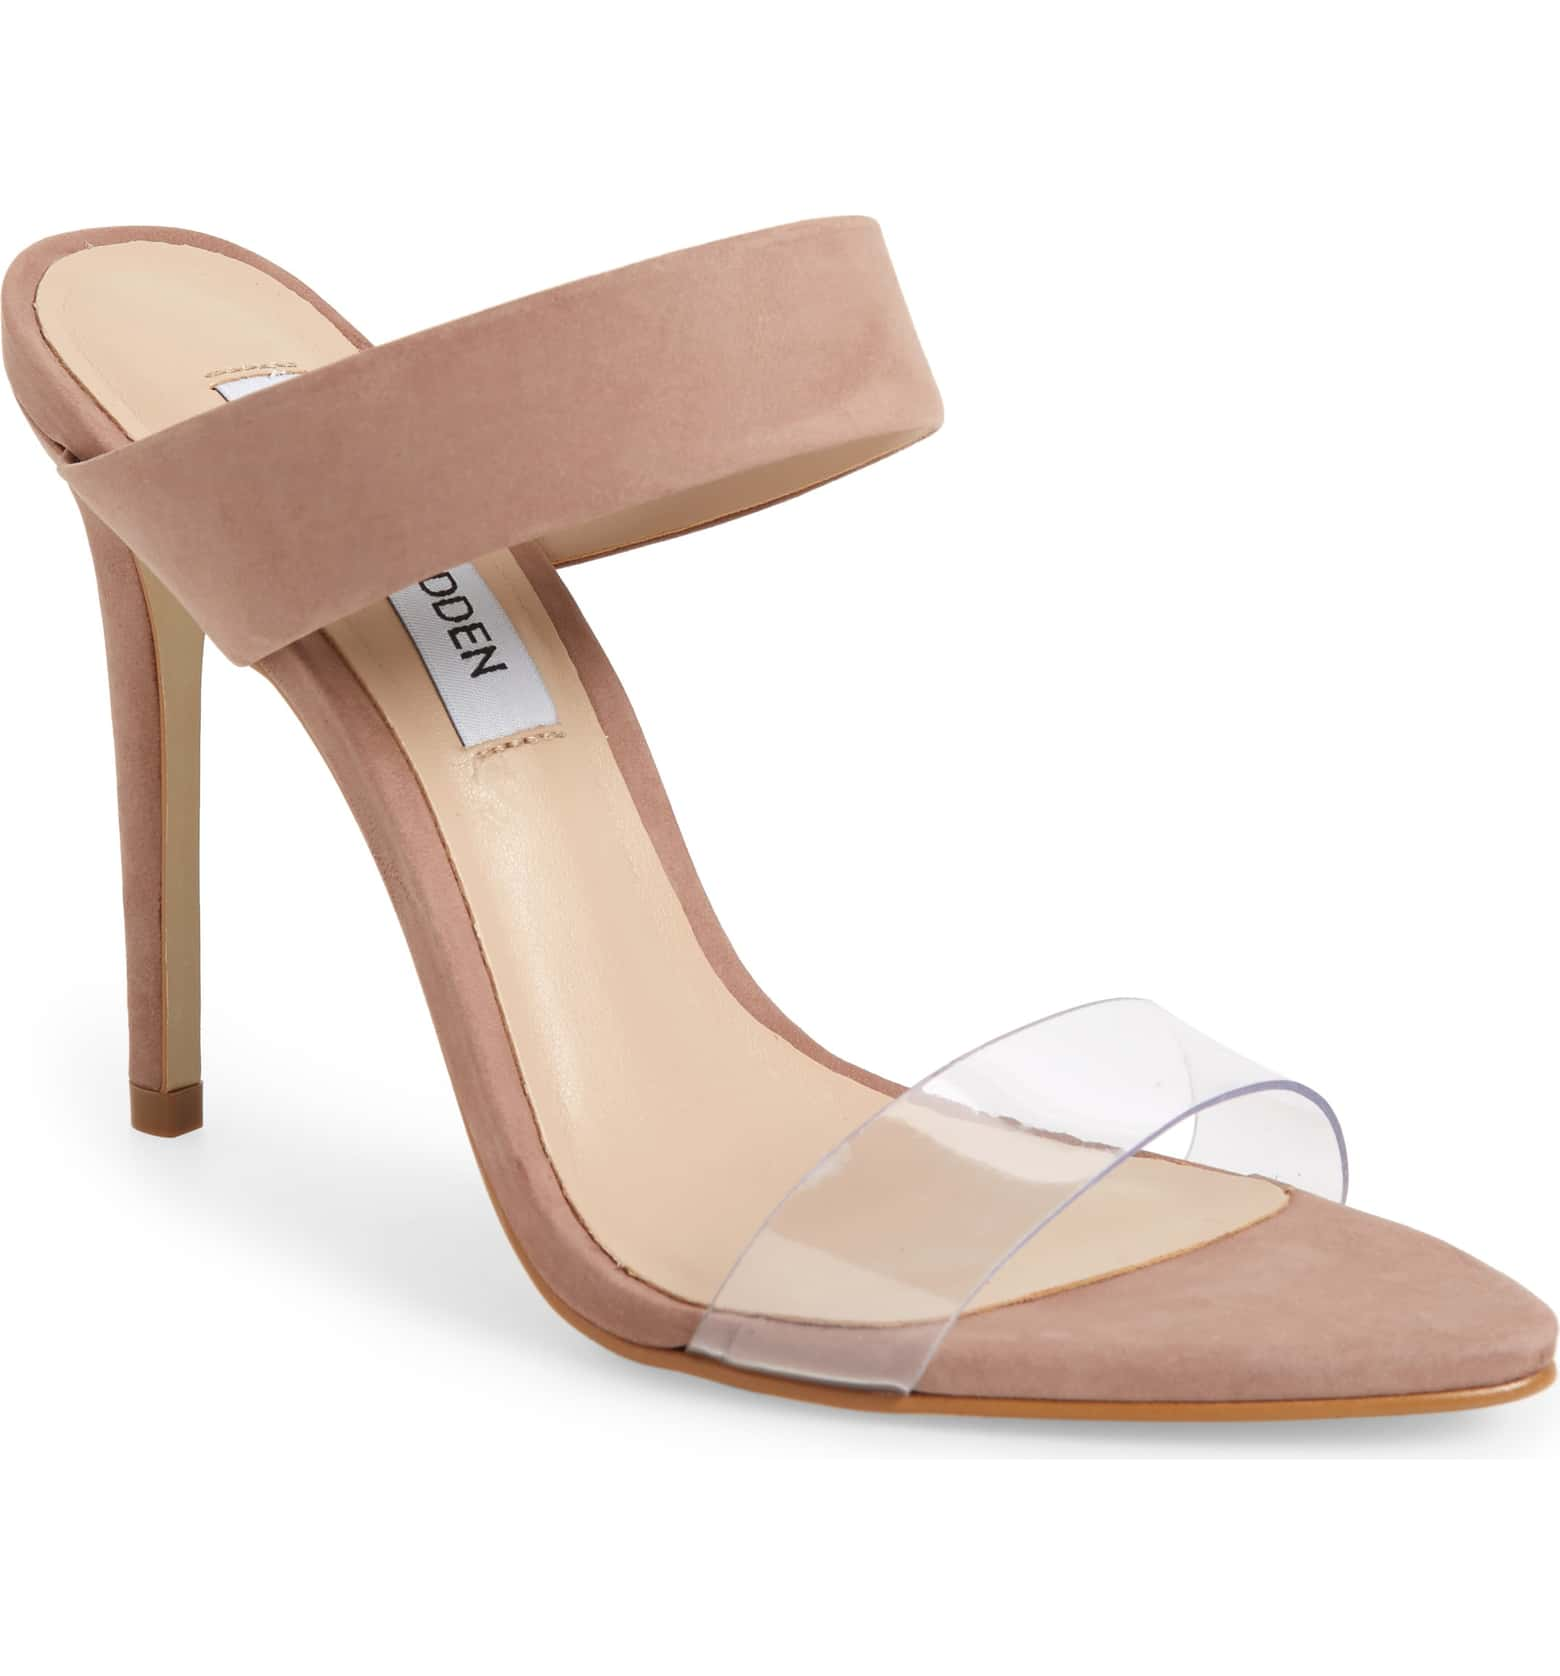 blush clear sandal.jpg